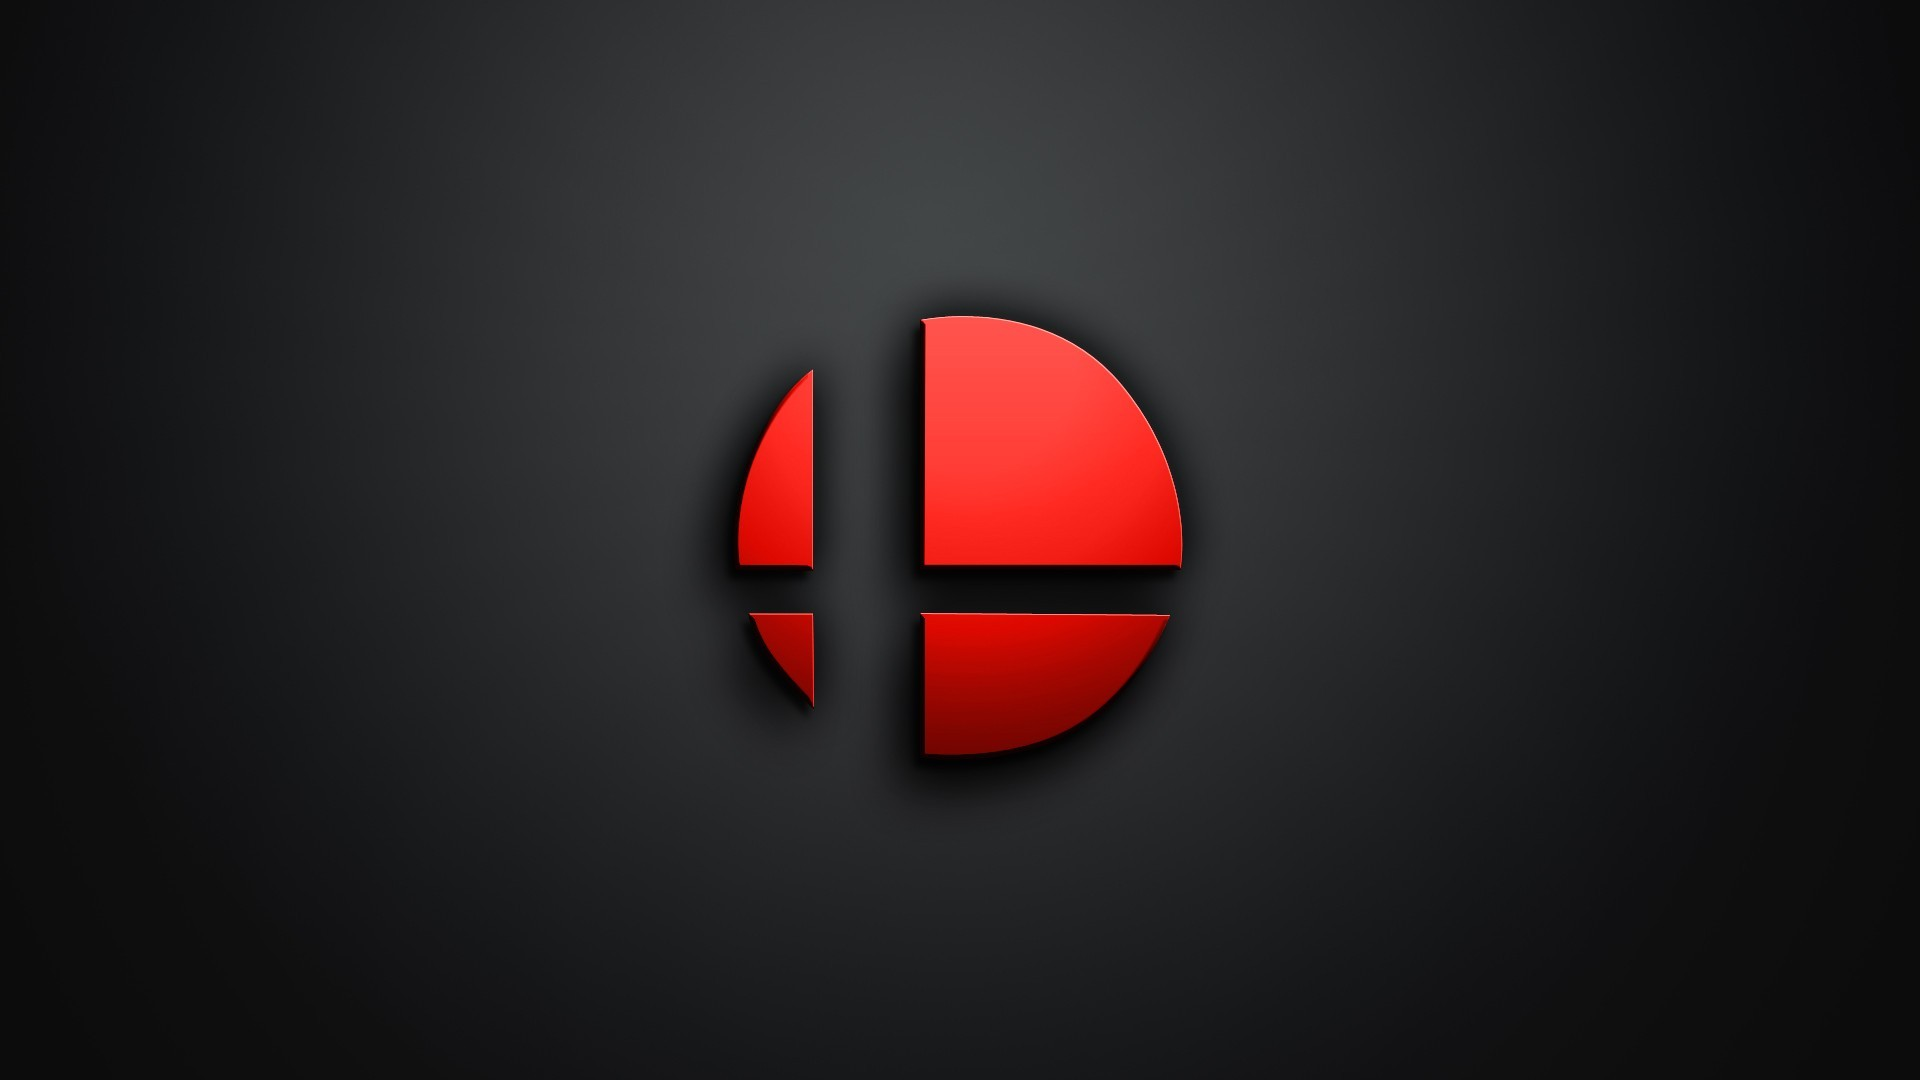 Super Smash Bros. Backgrounds, Pictures, Images